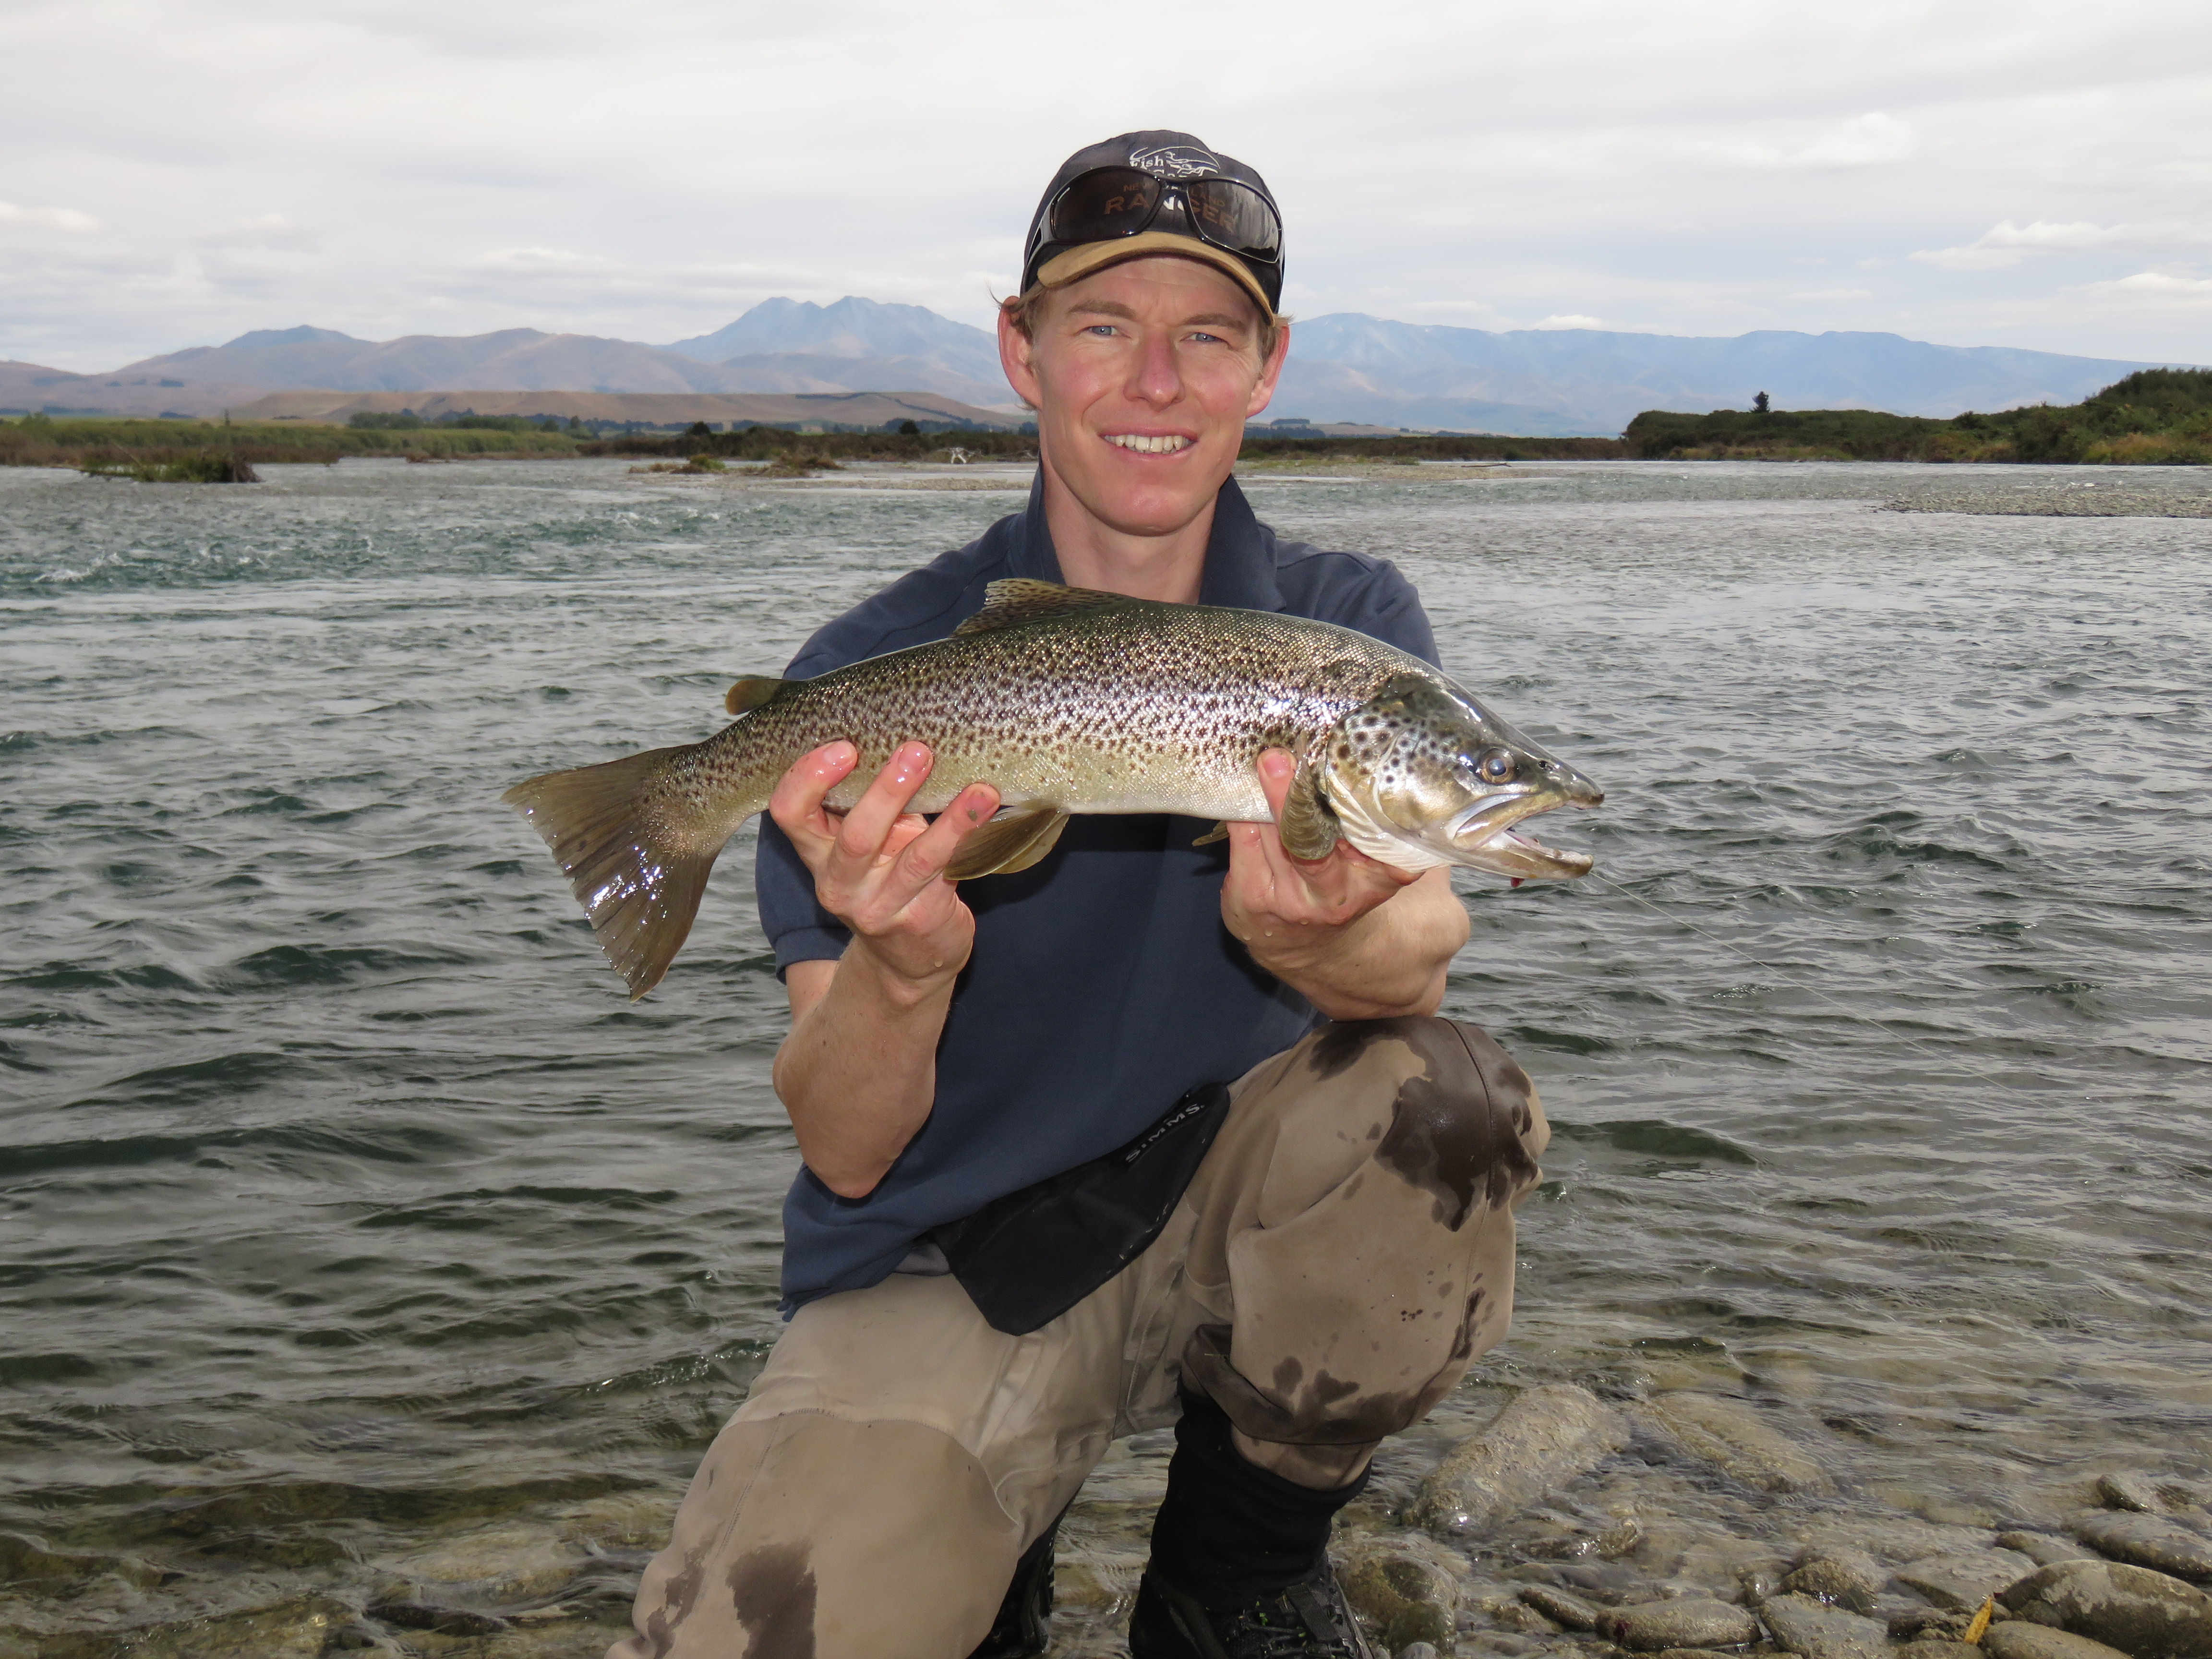 WFR1920.06 Find good Waitaki water and you will find good Waitaki fish Credit R Adams